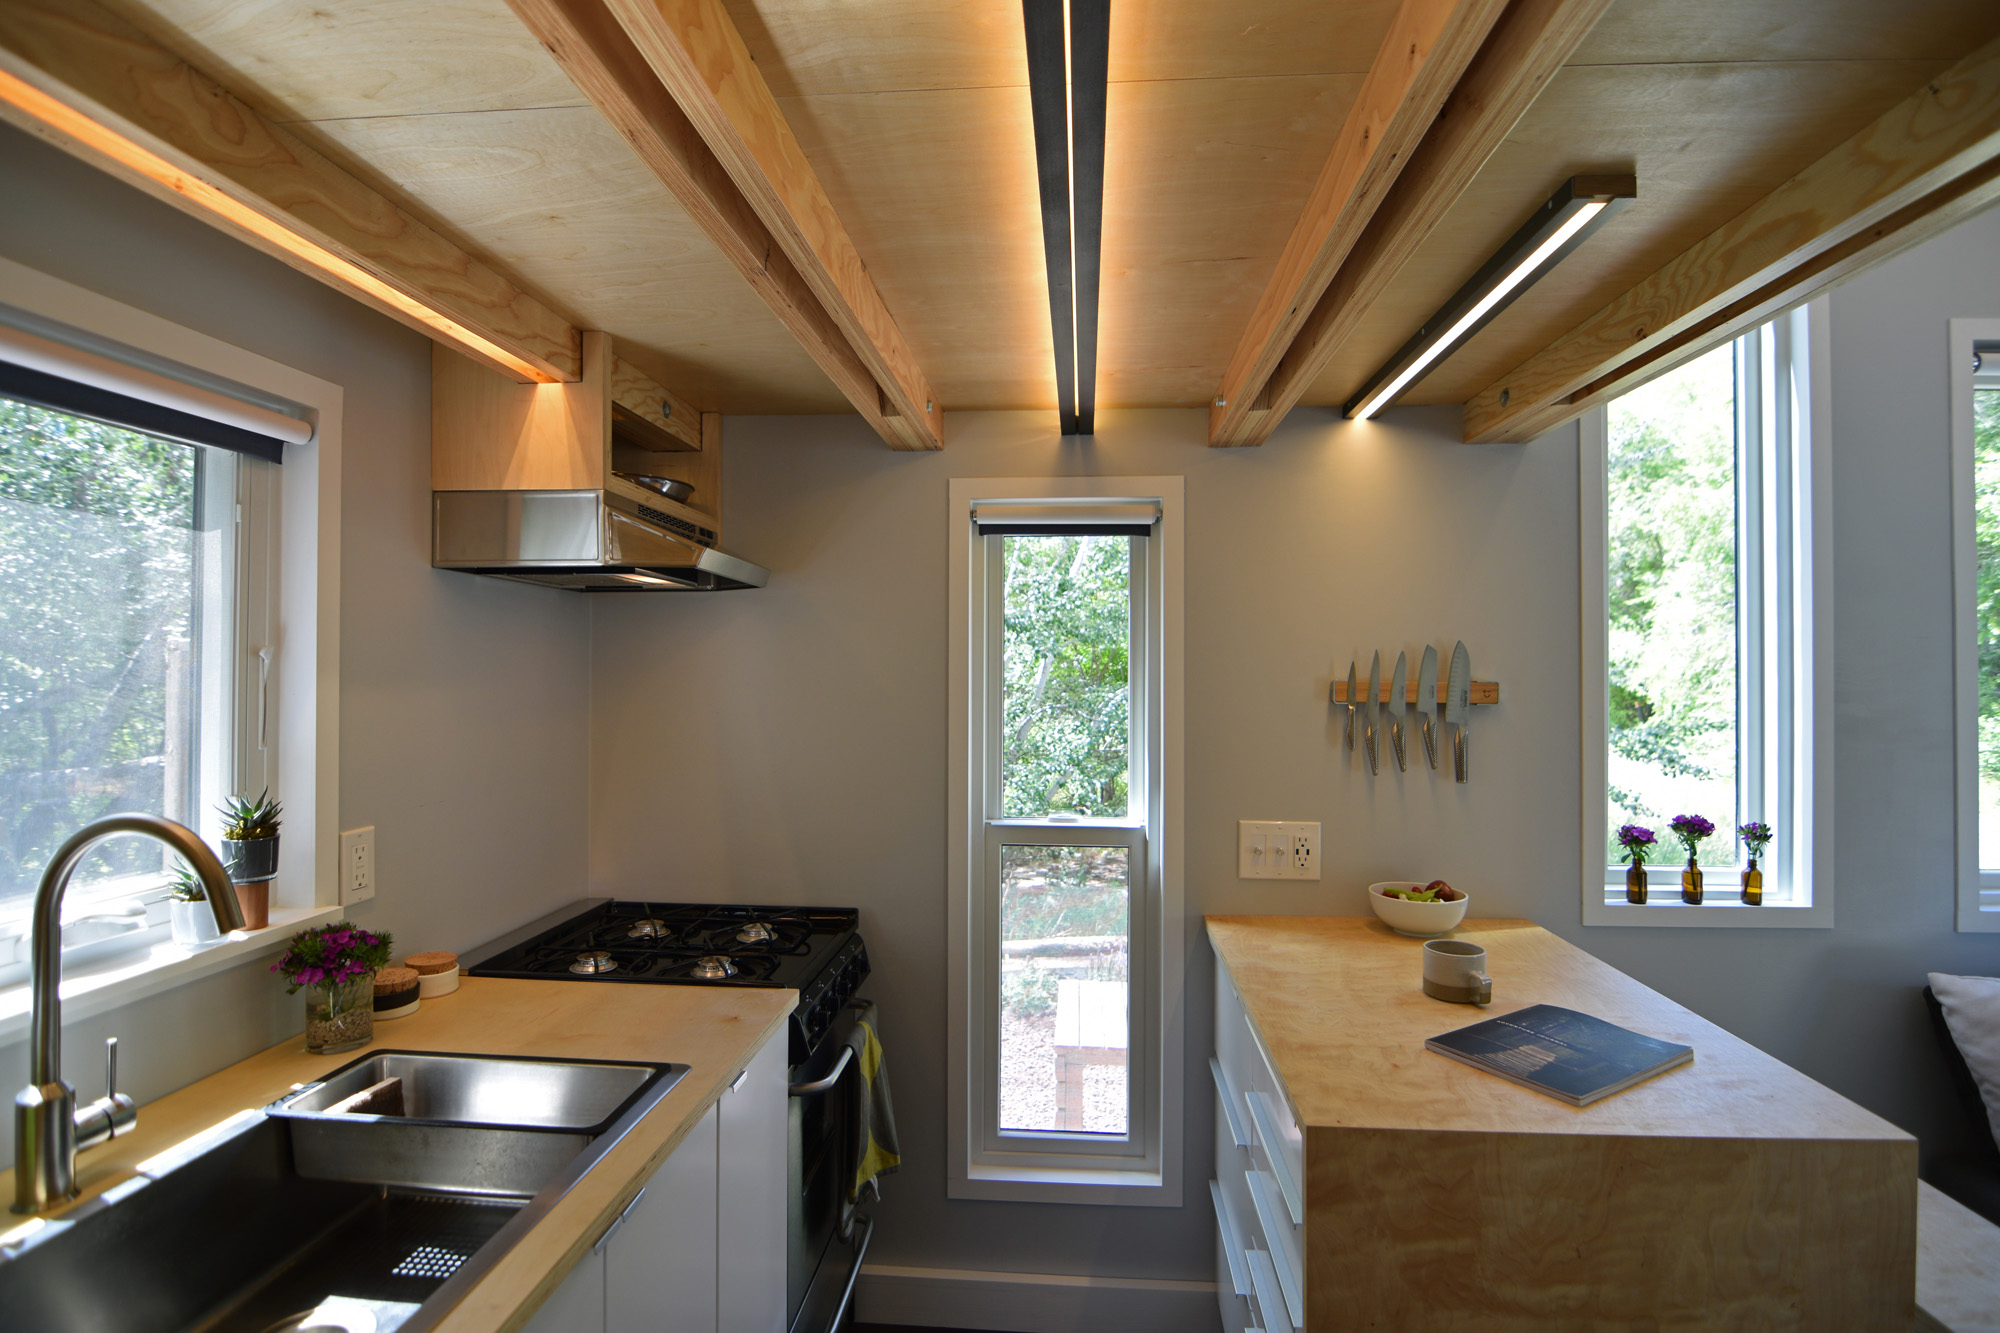 shedsistence-tiny-house-d-i-y-modern-galley-style-kitchen